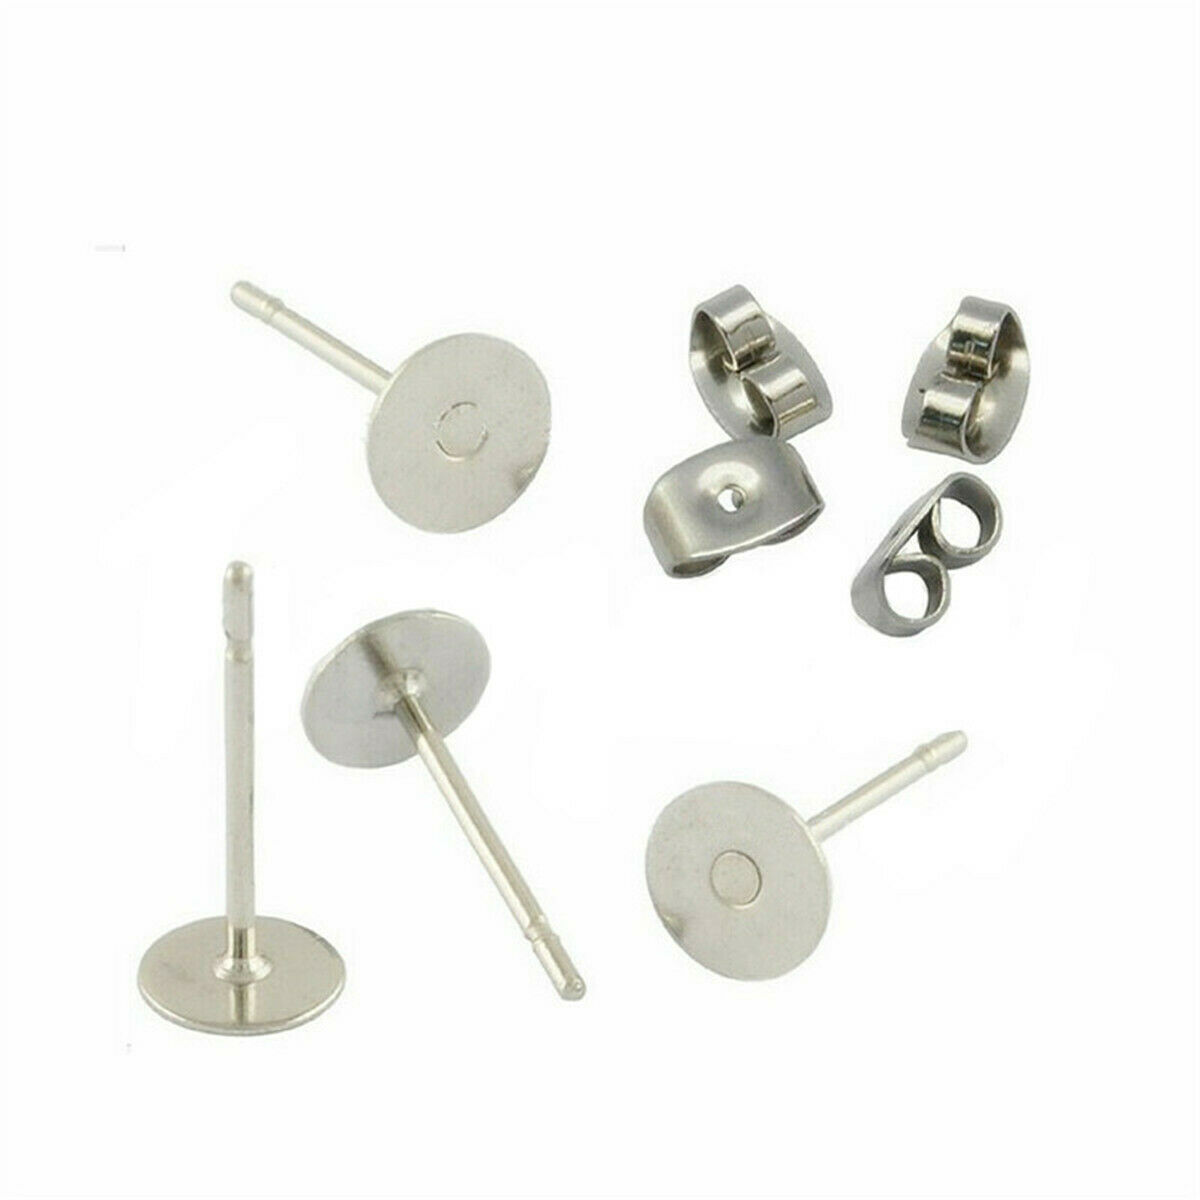 Silver Plated Flat Pad Earring Post 4mm,6mm,8mm,10mm R0067